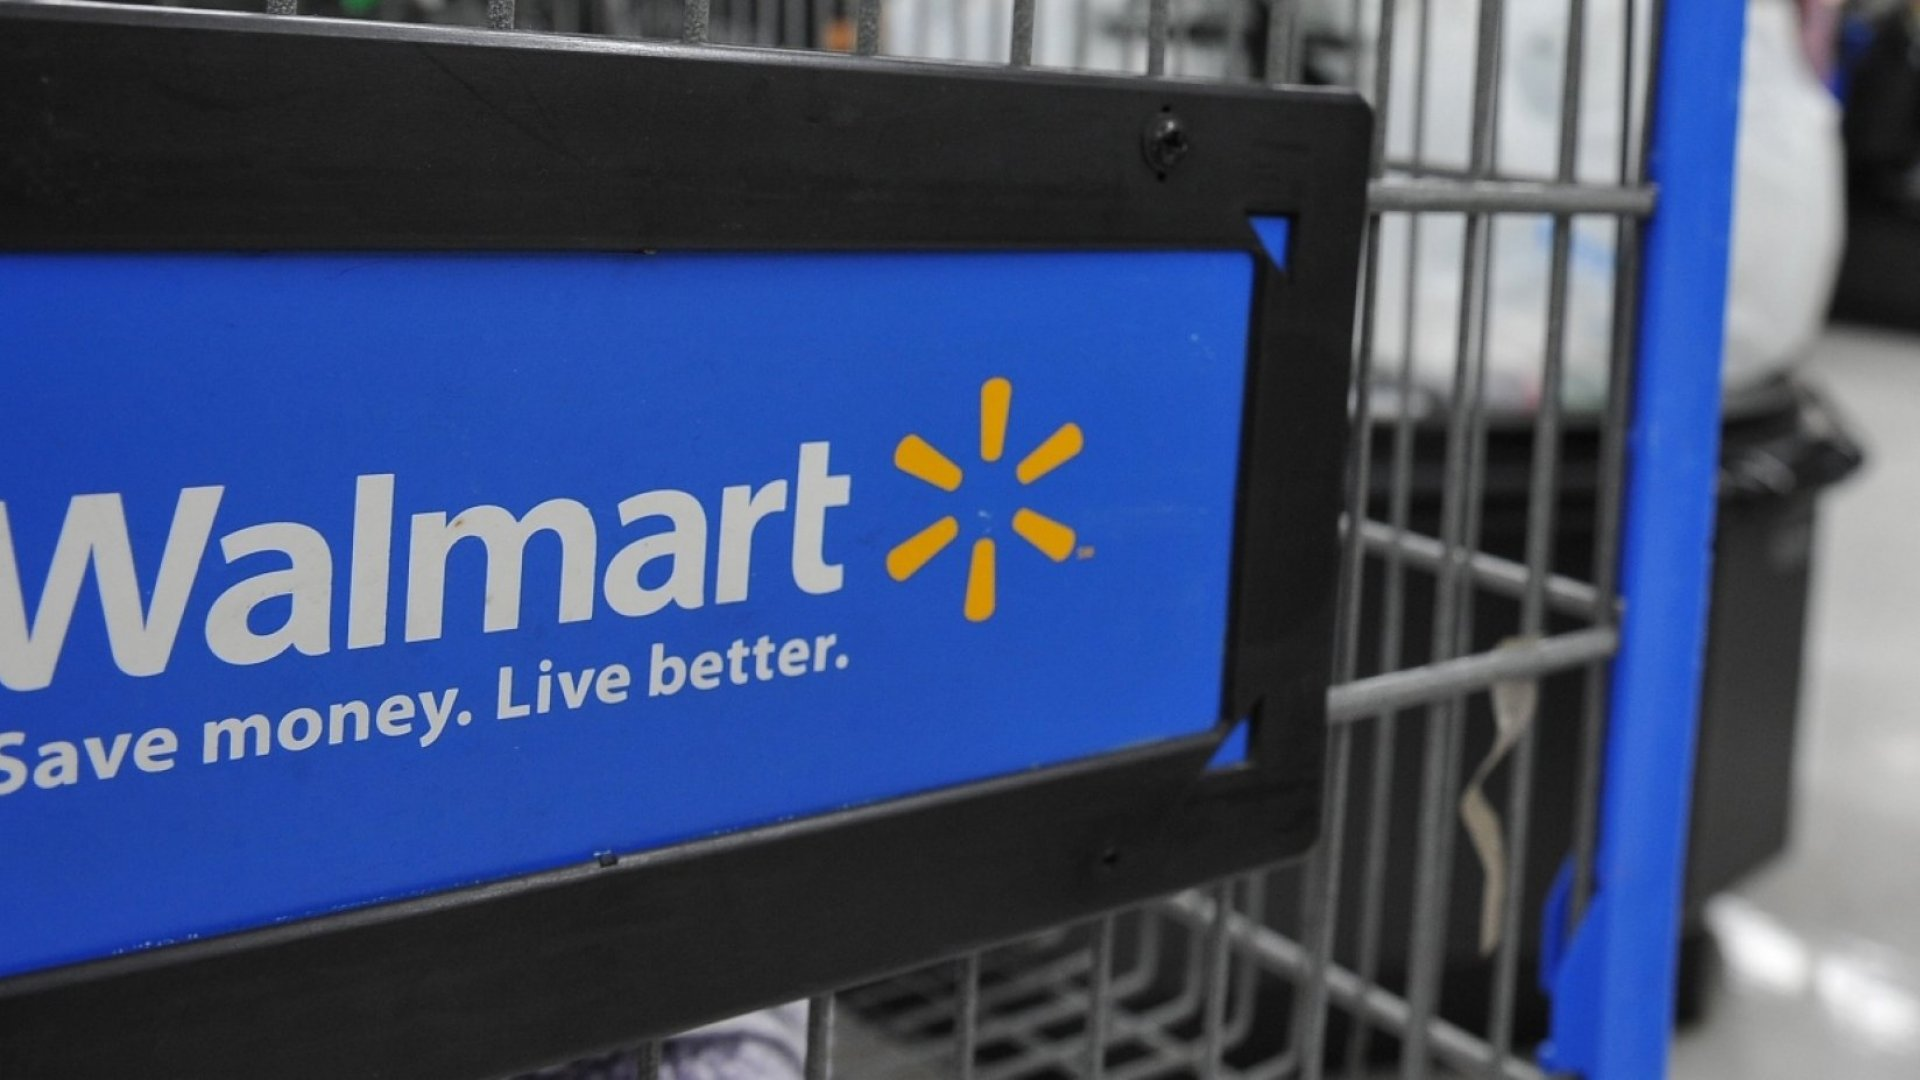 Walmart Spent Years on a Secret Plan to Attack Amazon. The War Is About to Begin